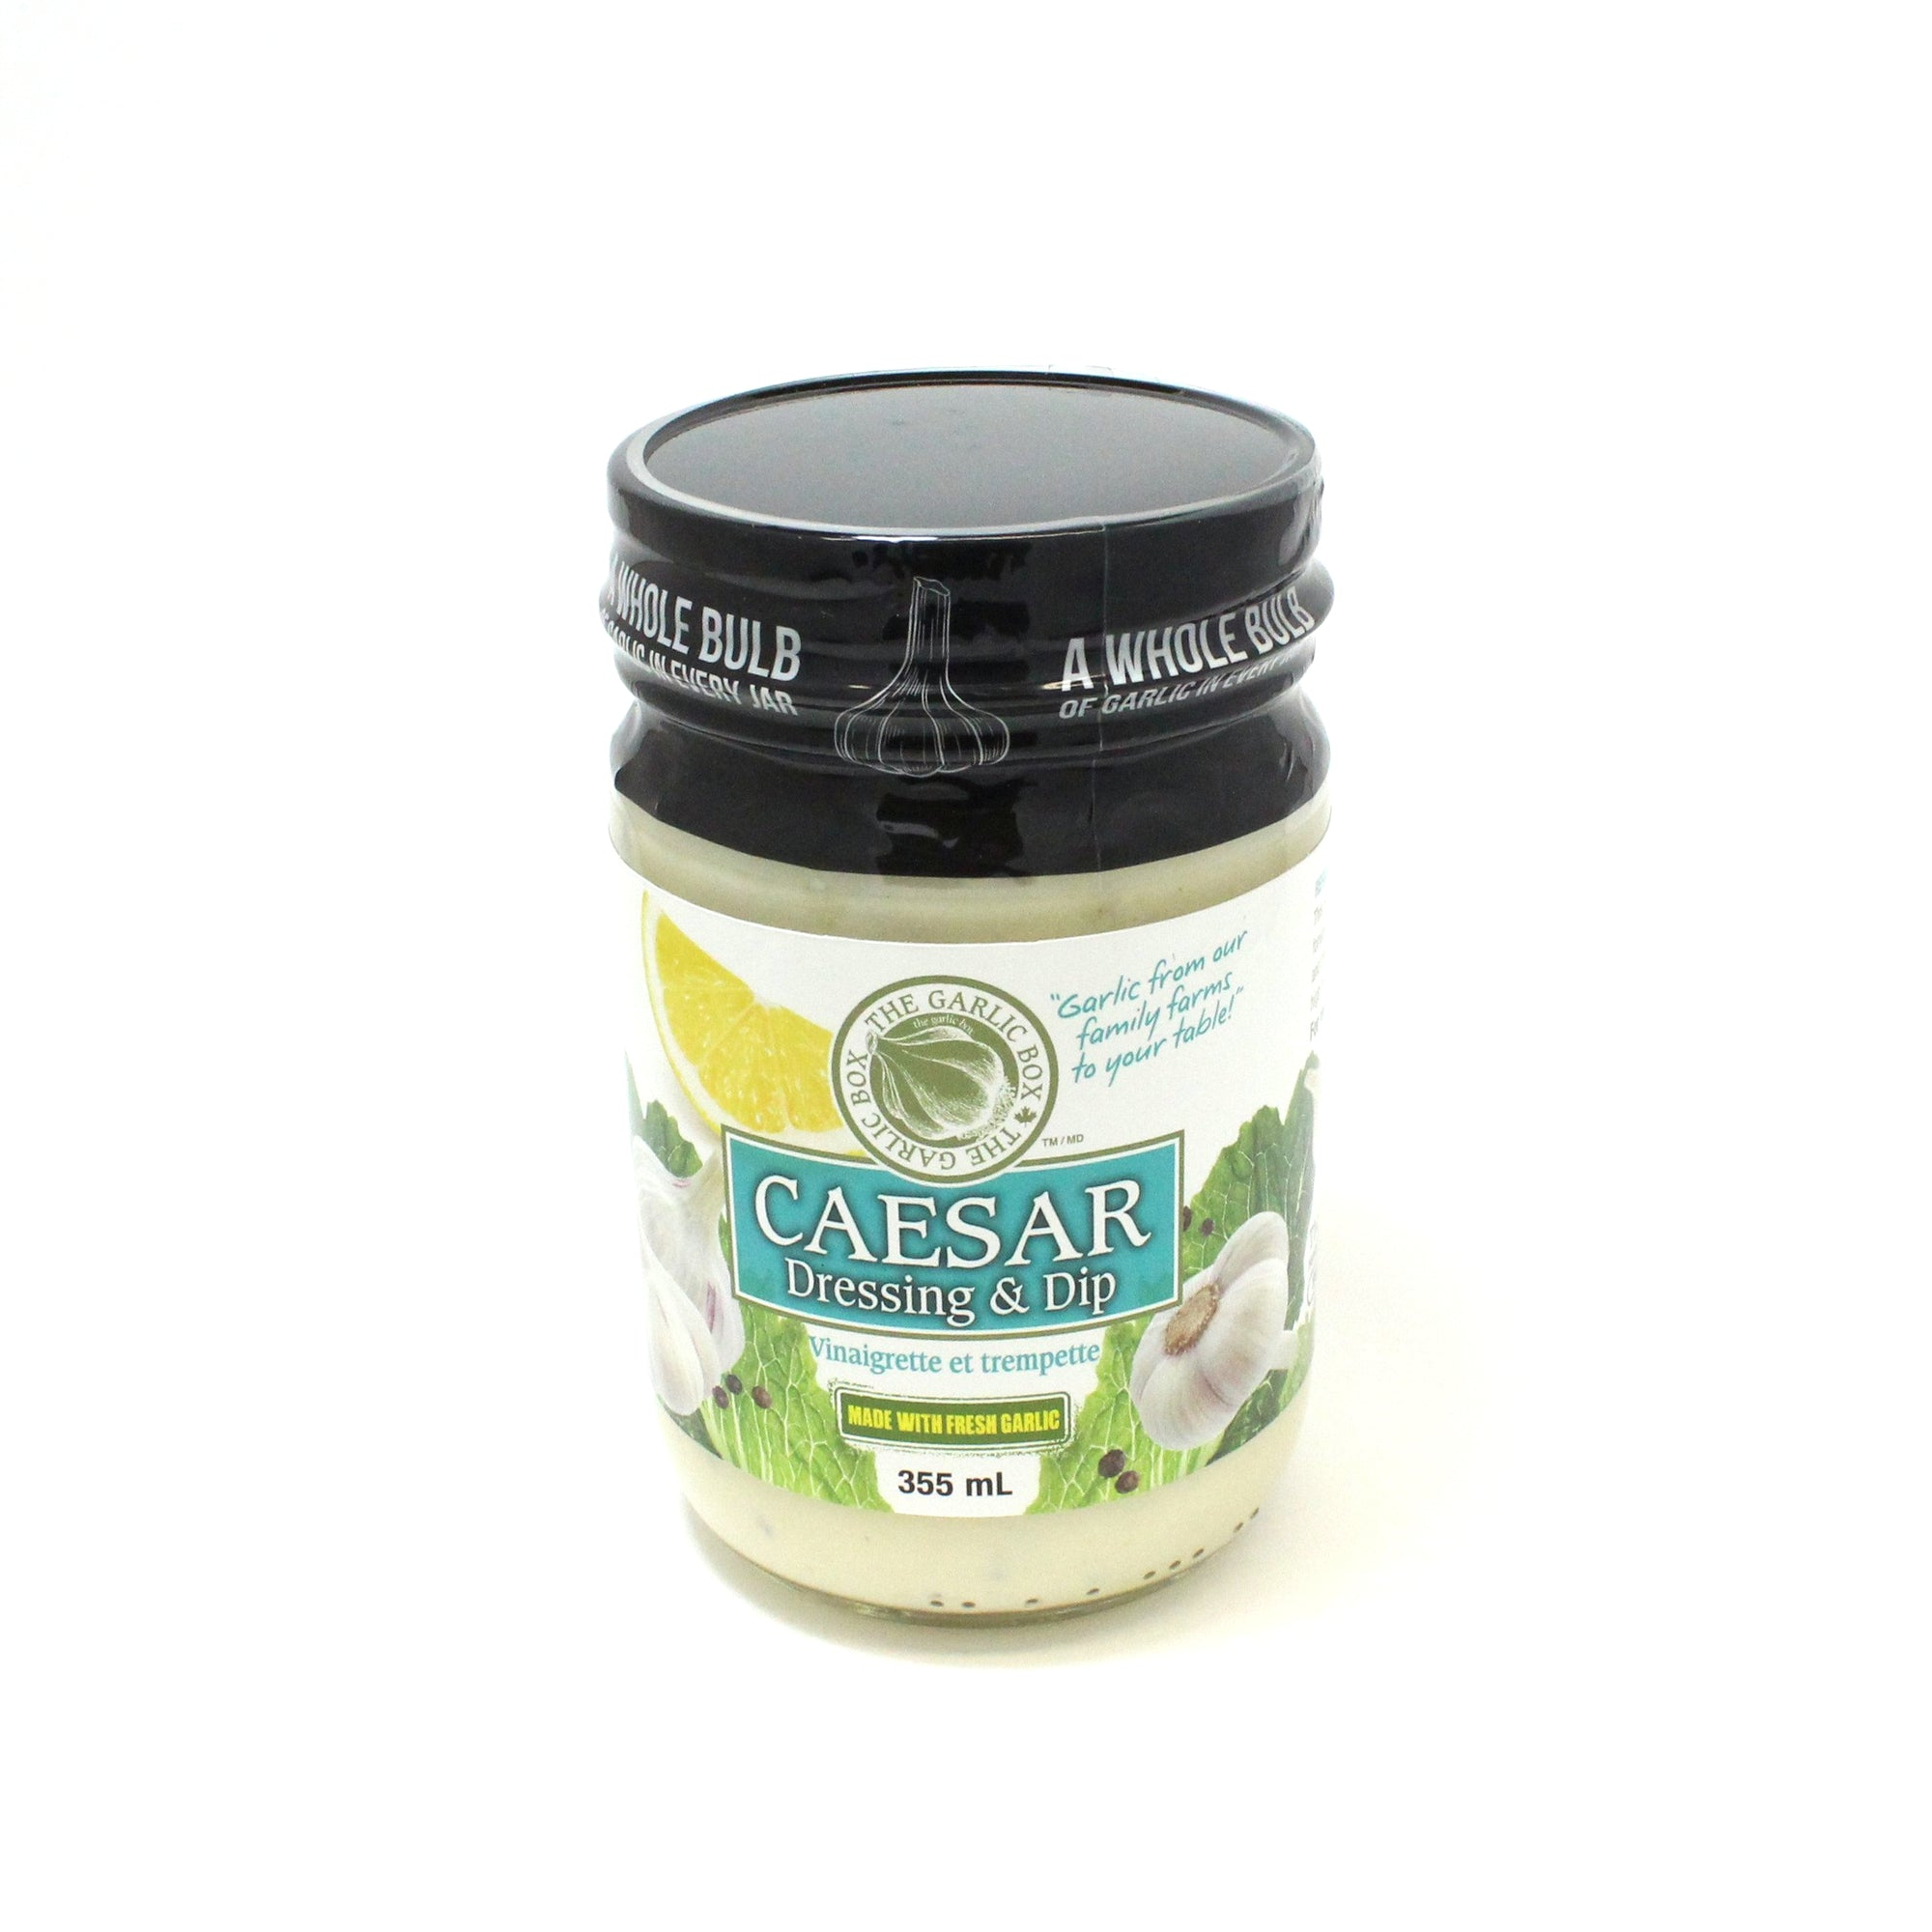 Garlic Box Caesar Dressing